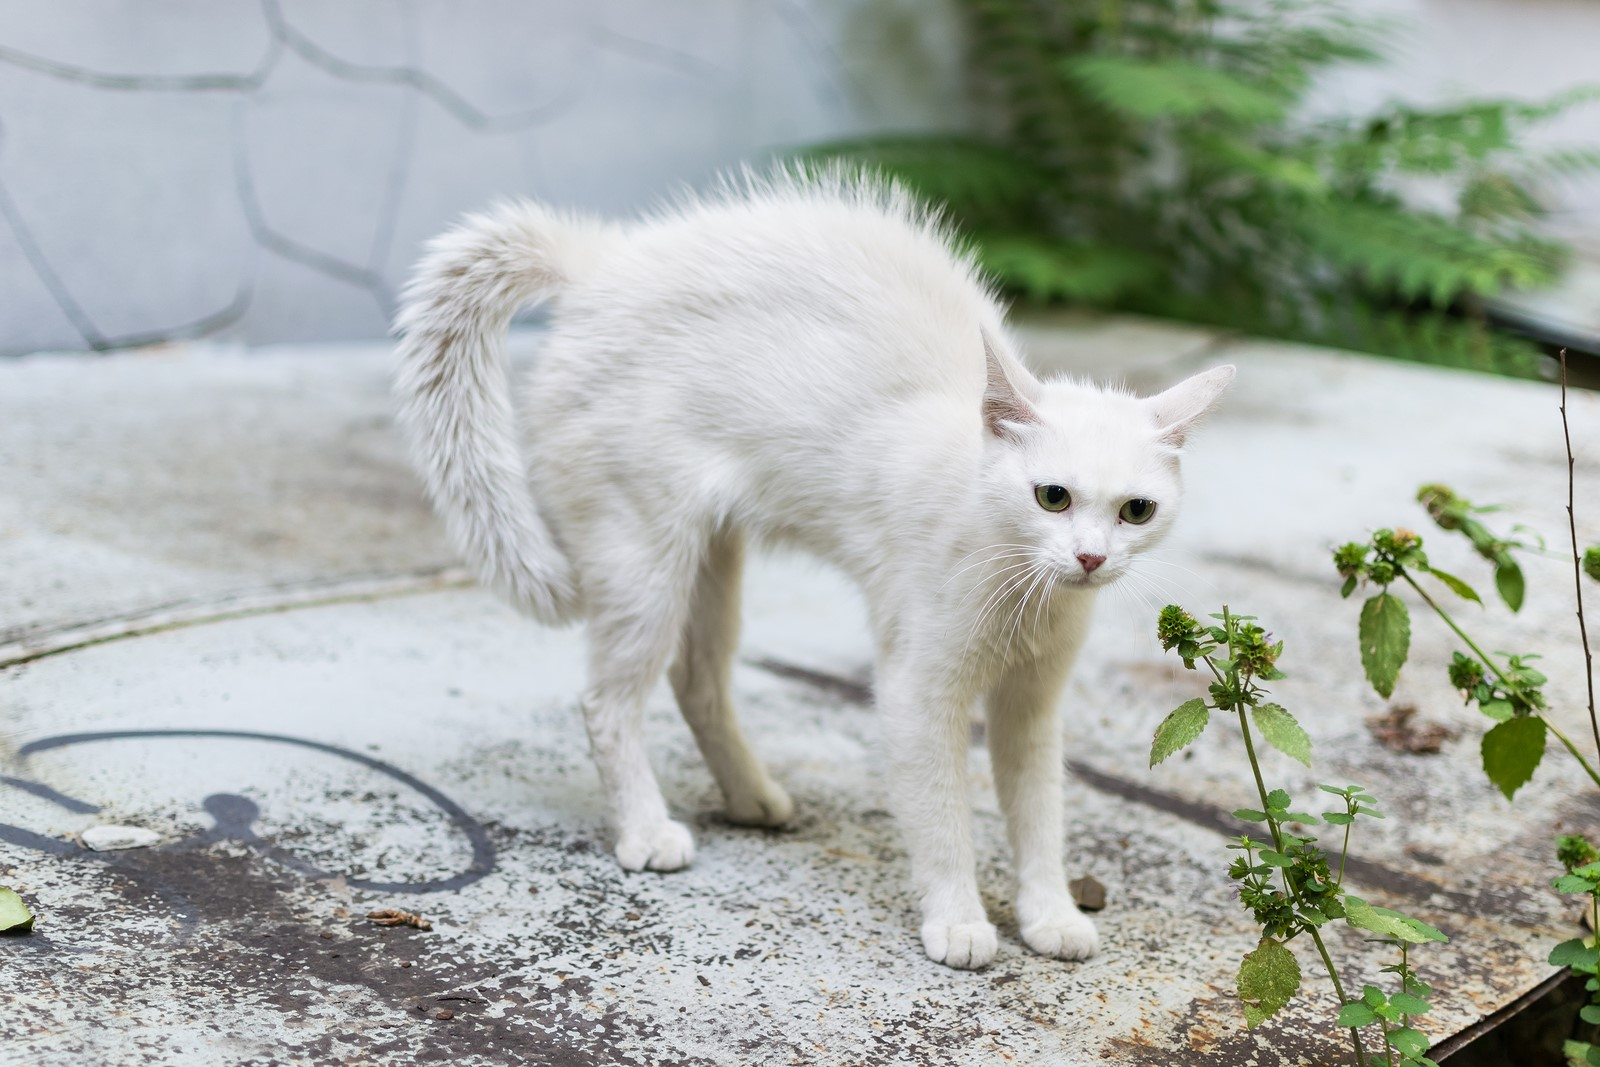 A Guide to Approaching Stray Cats Safely